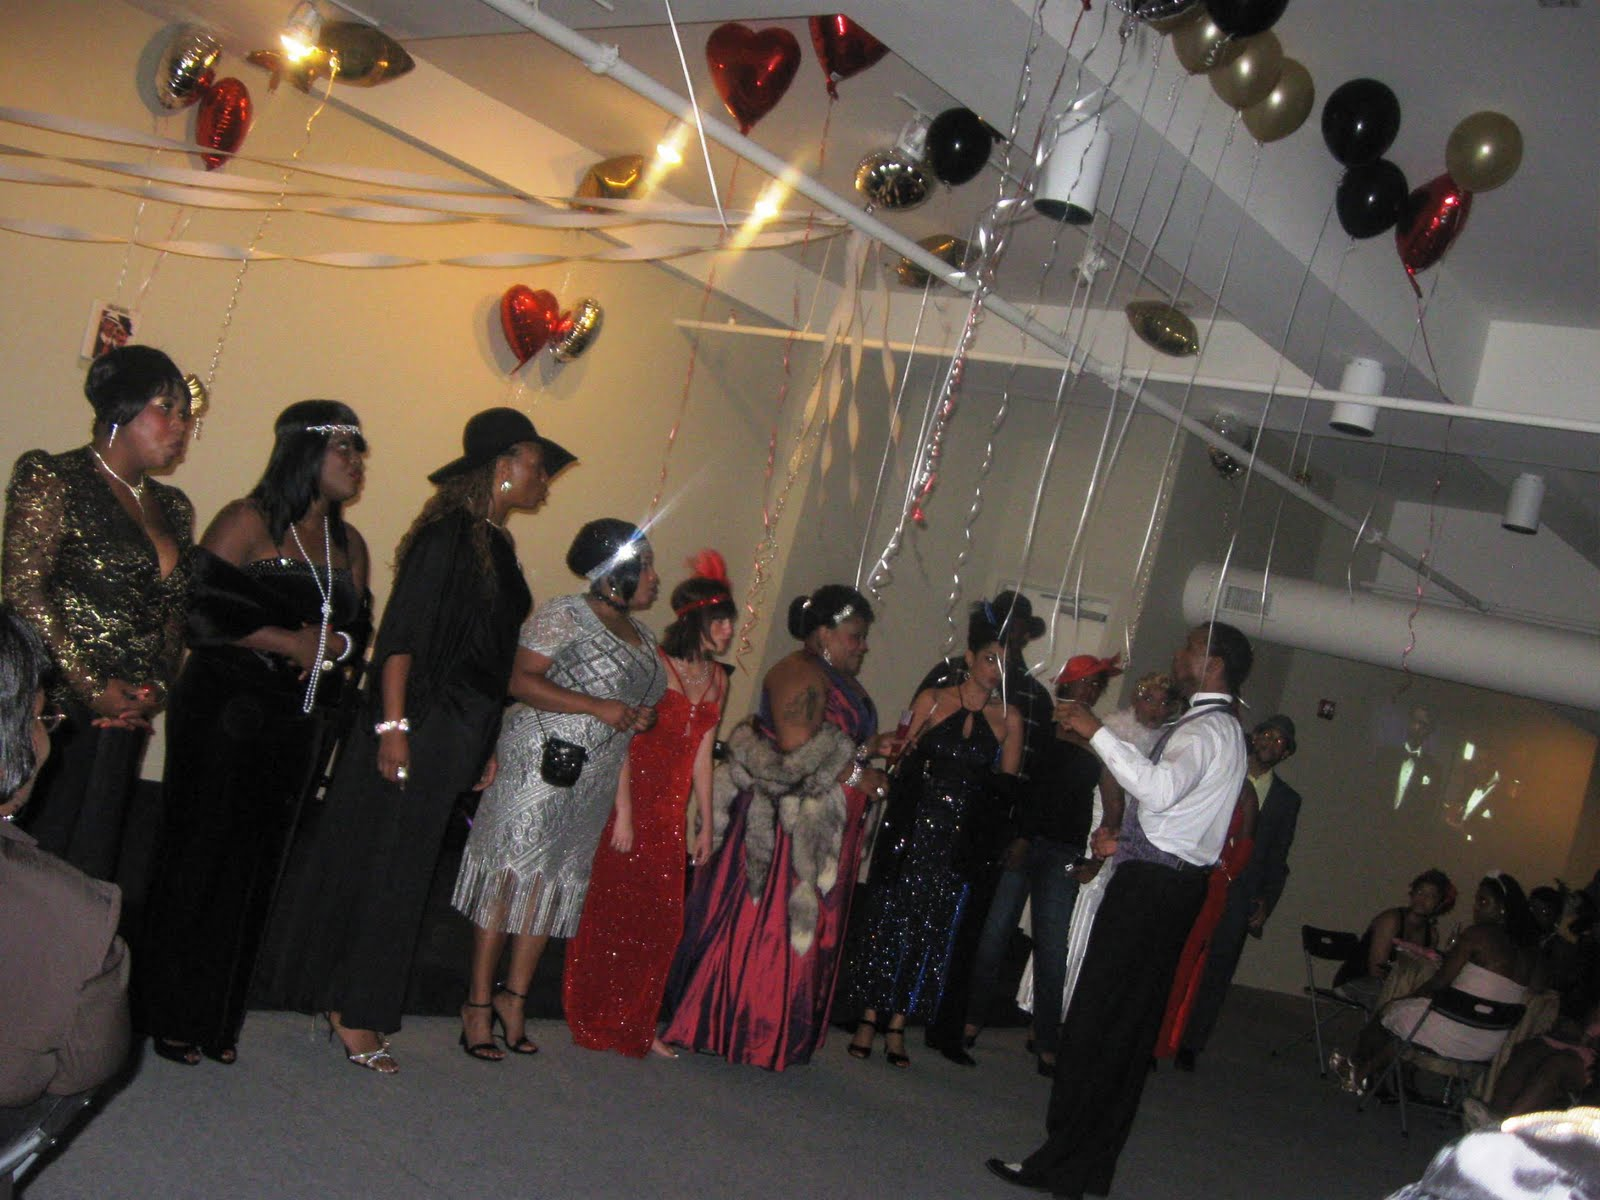 Harlem Nights Costumes http://maatology.blogspot.com/2010/08/out-862-joel-kings-harlem-nights-themed.html